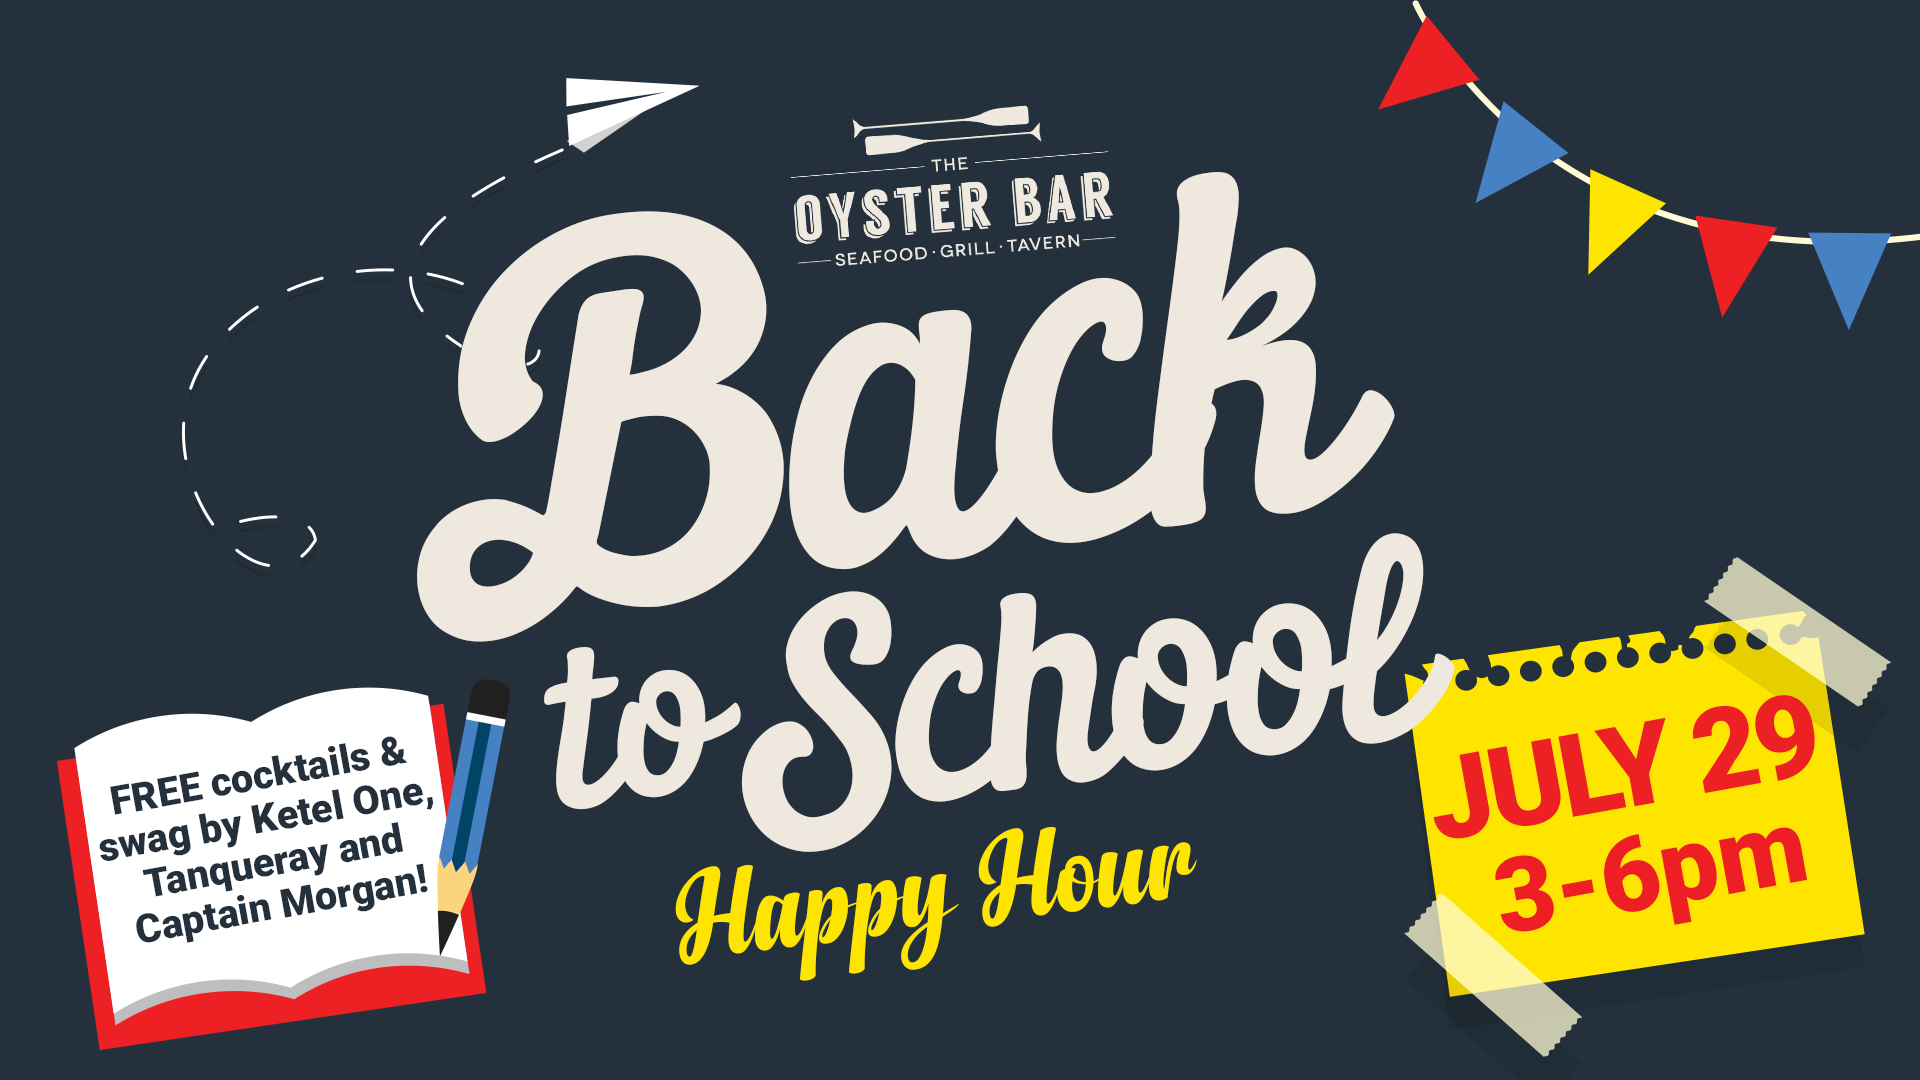 FREE COCKTAILS AT OYSTER BAR'S BACK TO SCHOOL HAPPY HOUR 7/29